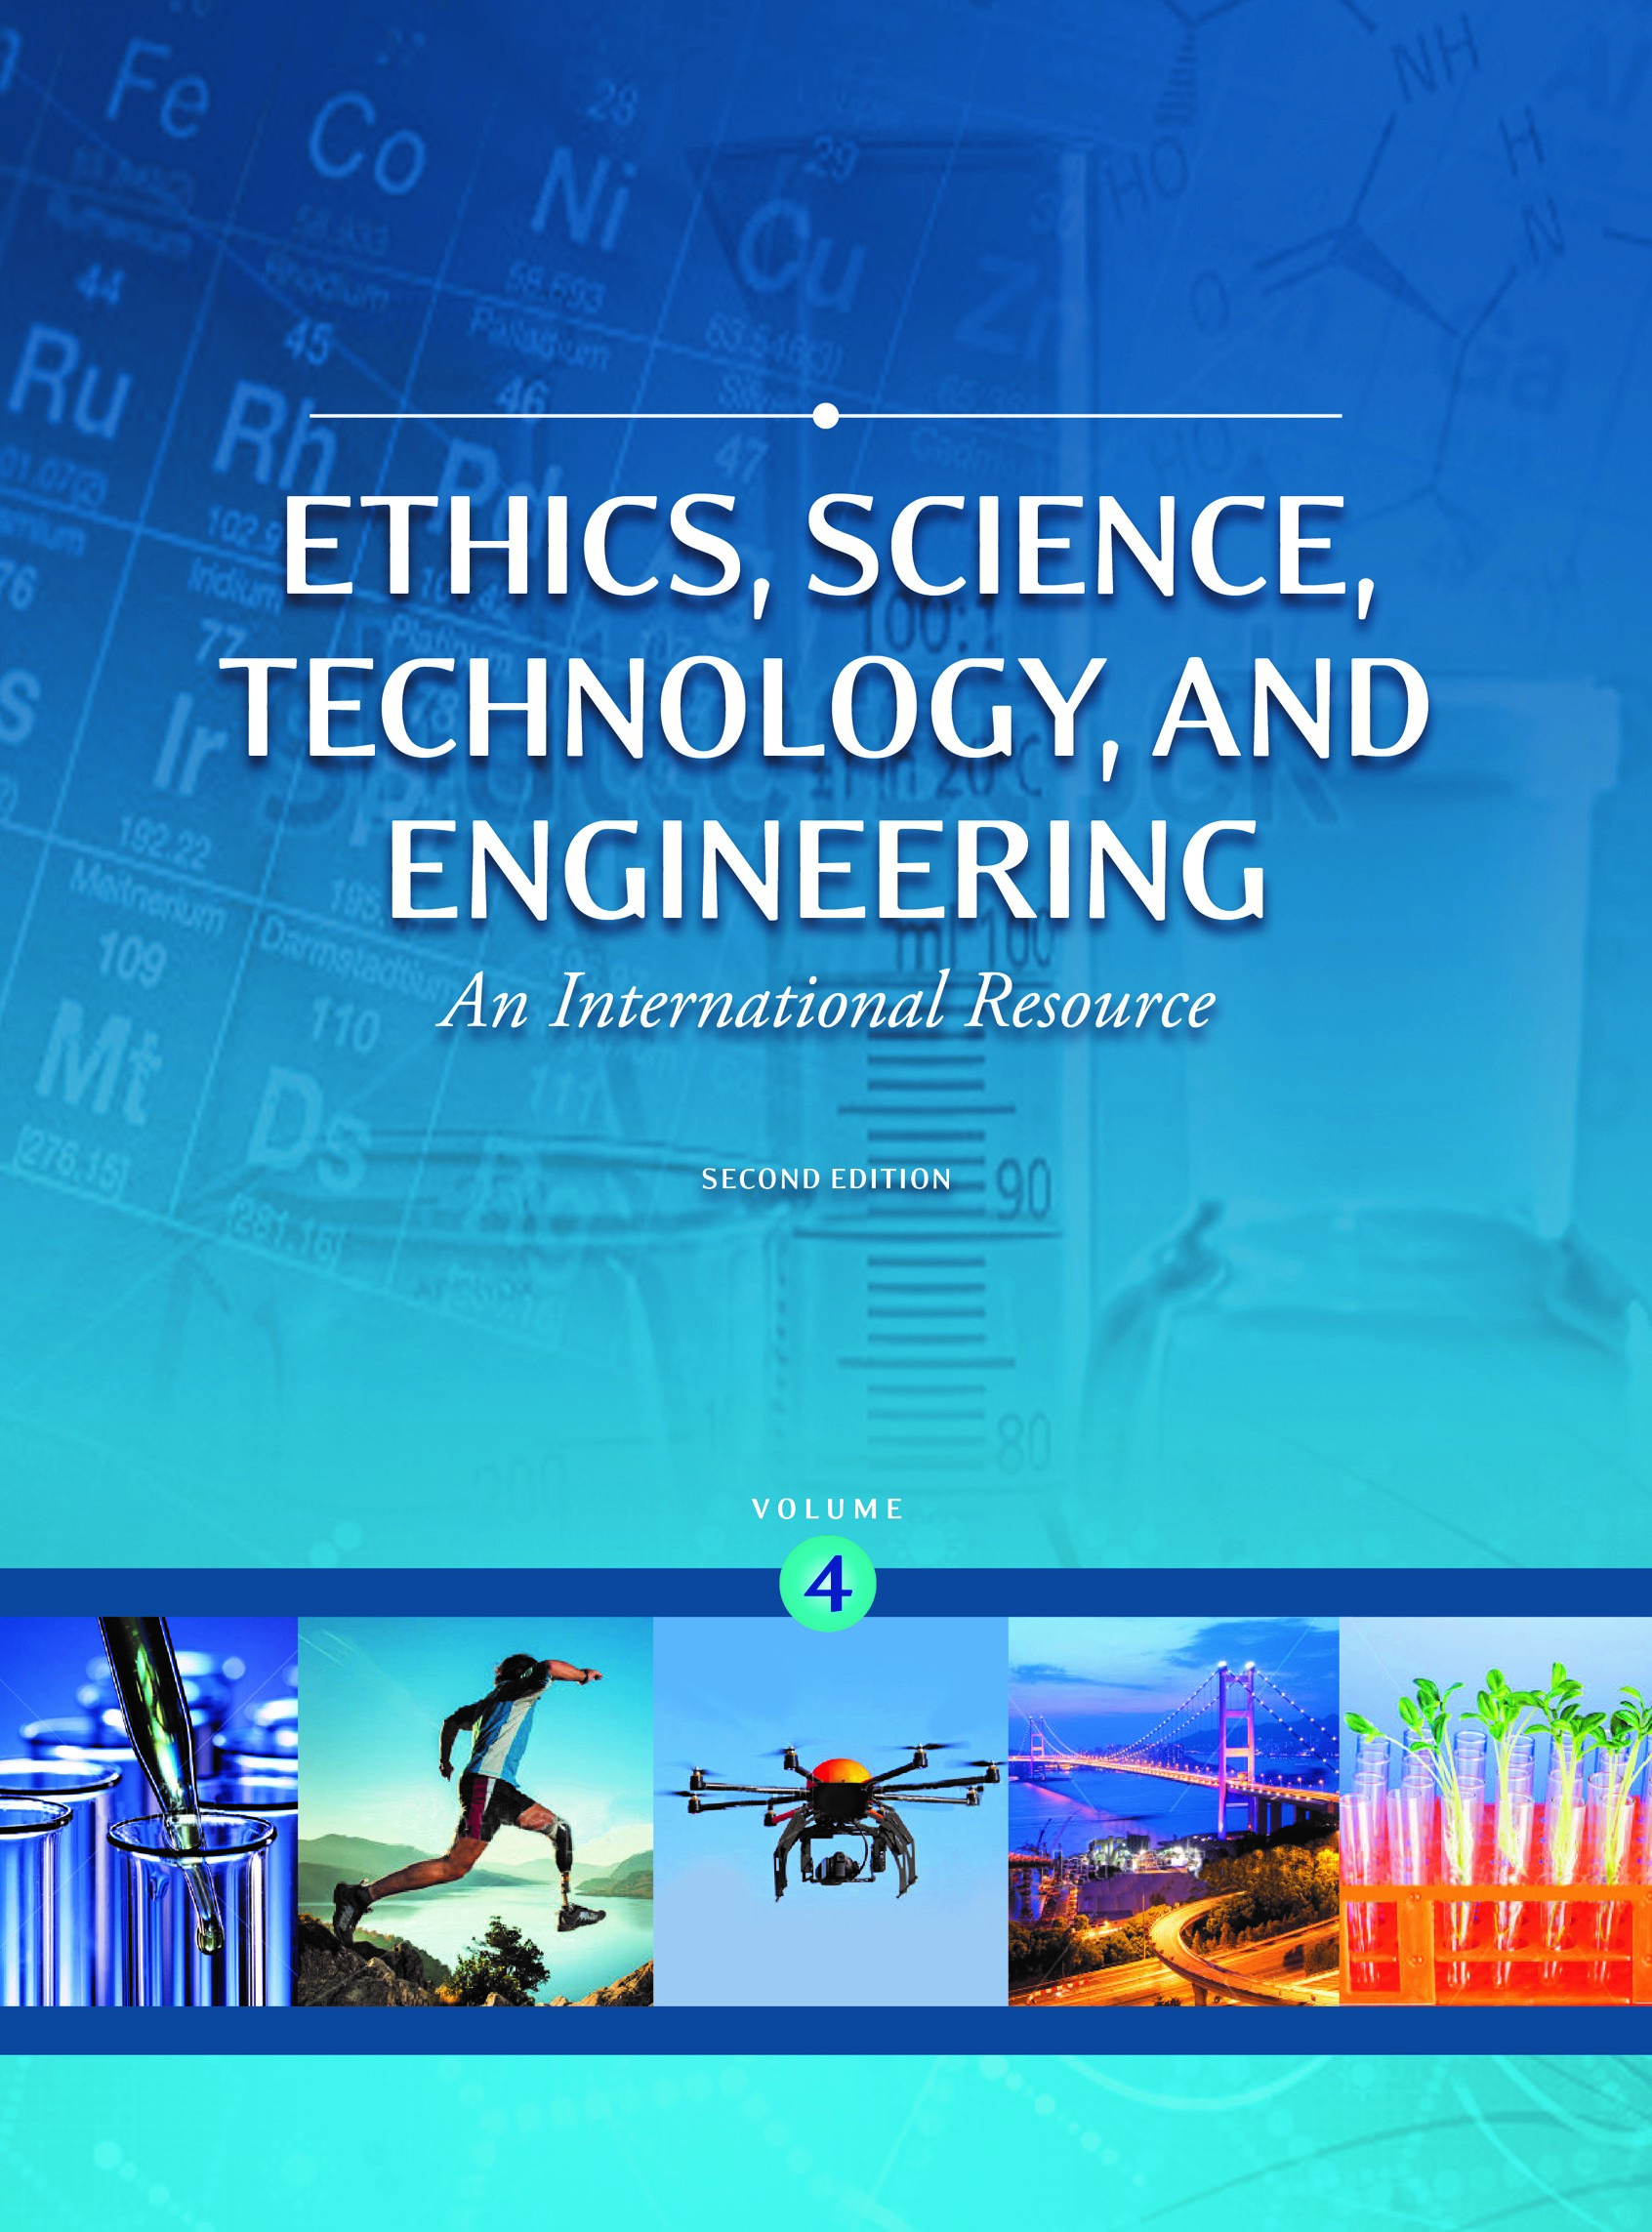 ethics and engineering Ethics in engineering [mike w martin, roland schinzinger] on amazoncom free shipping on qualifying offers now in its fourth edition, martin and schinzinger's ethics in engineering provides an introduction to the key issues in engineering ethics.